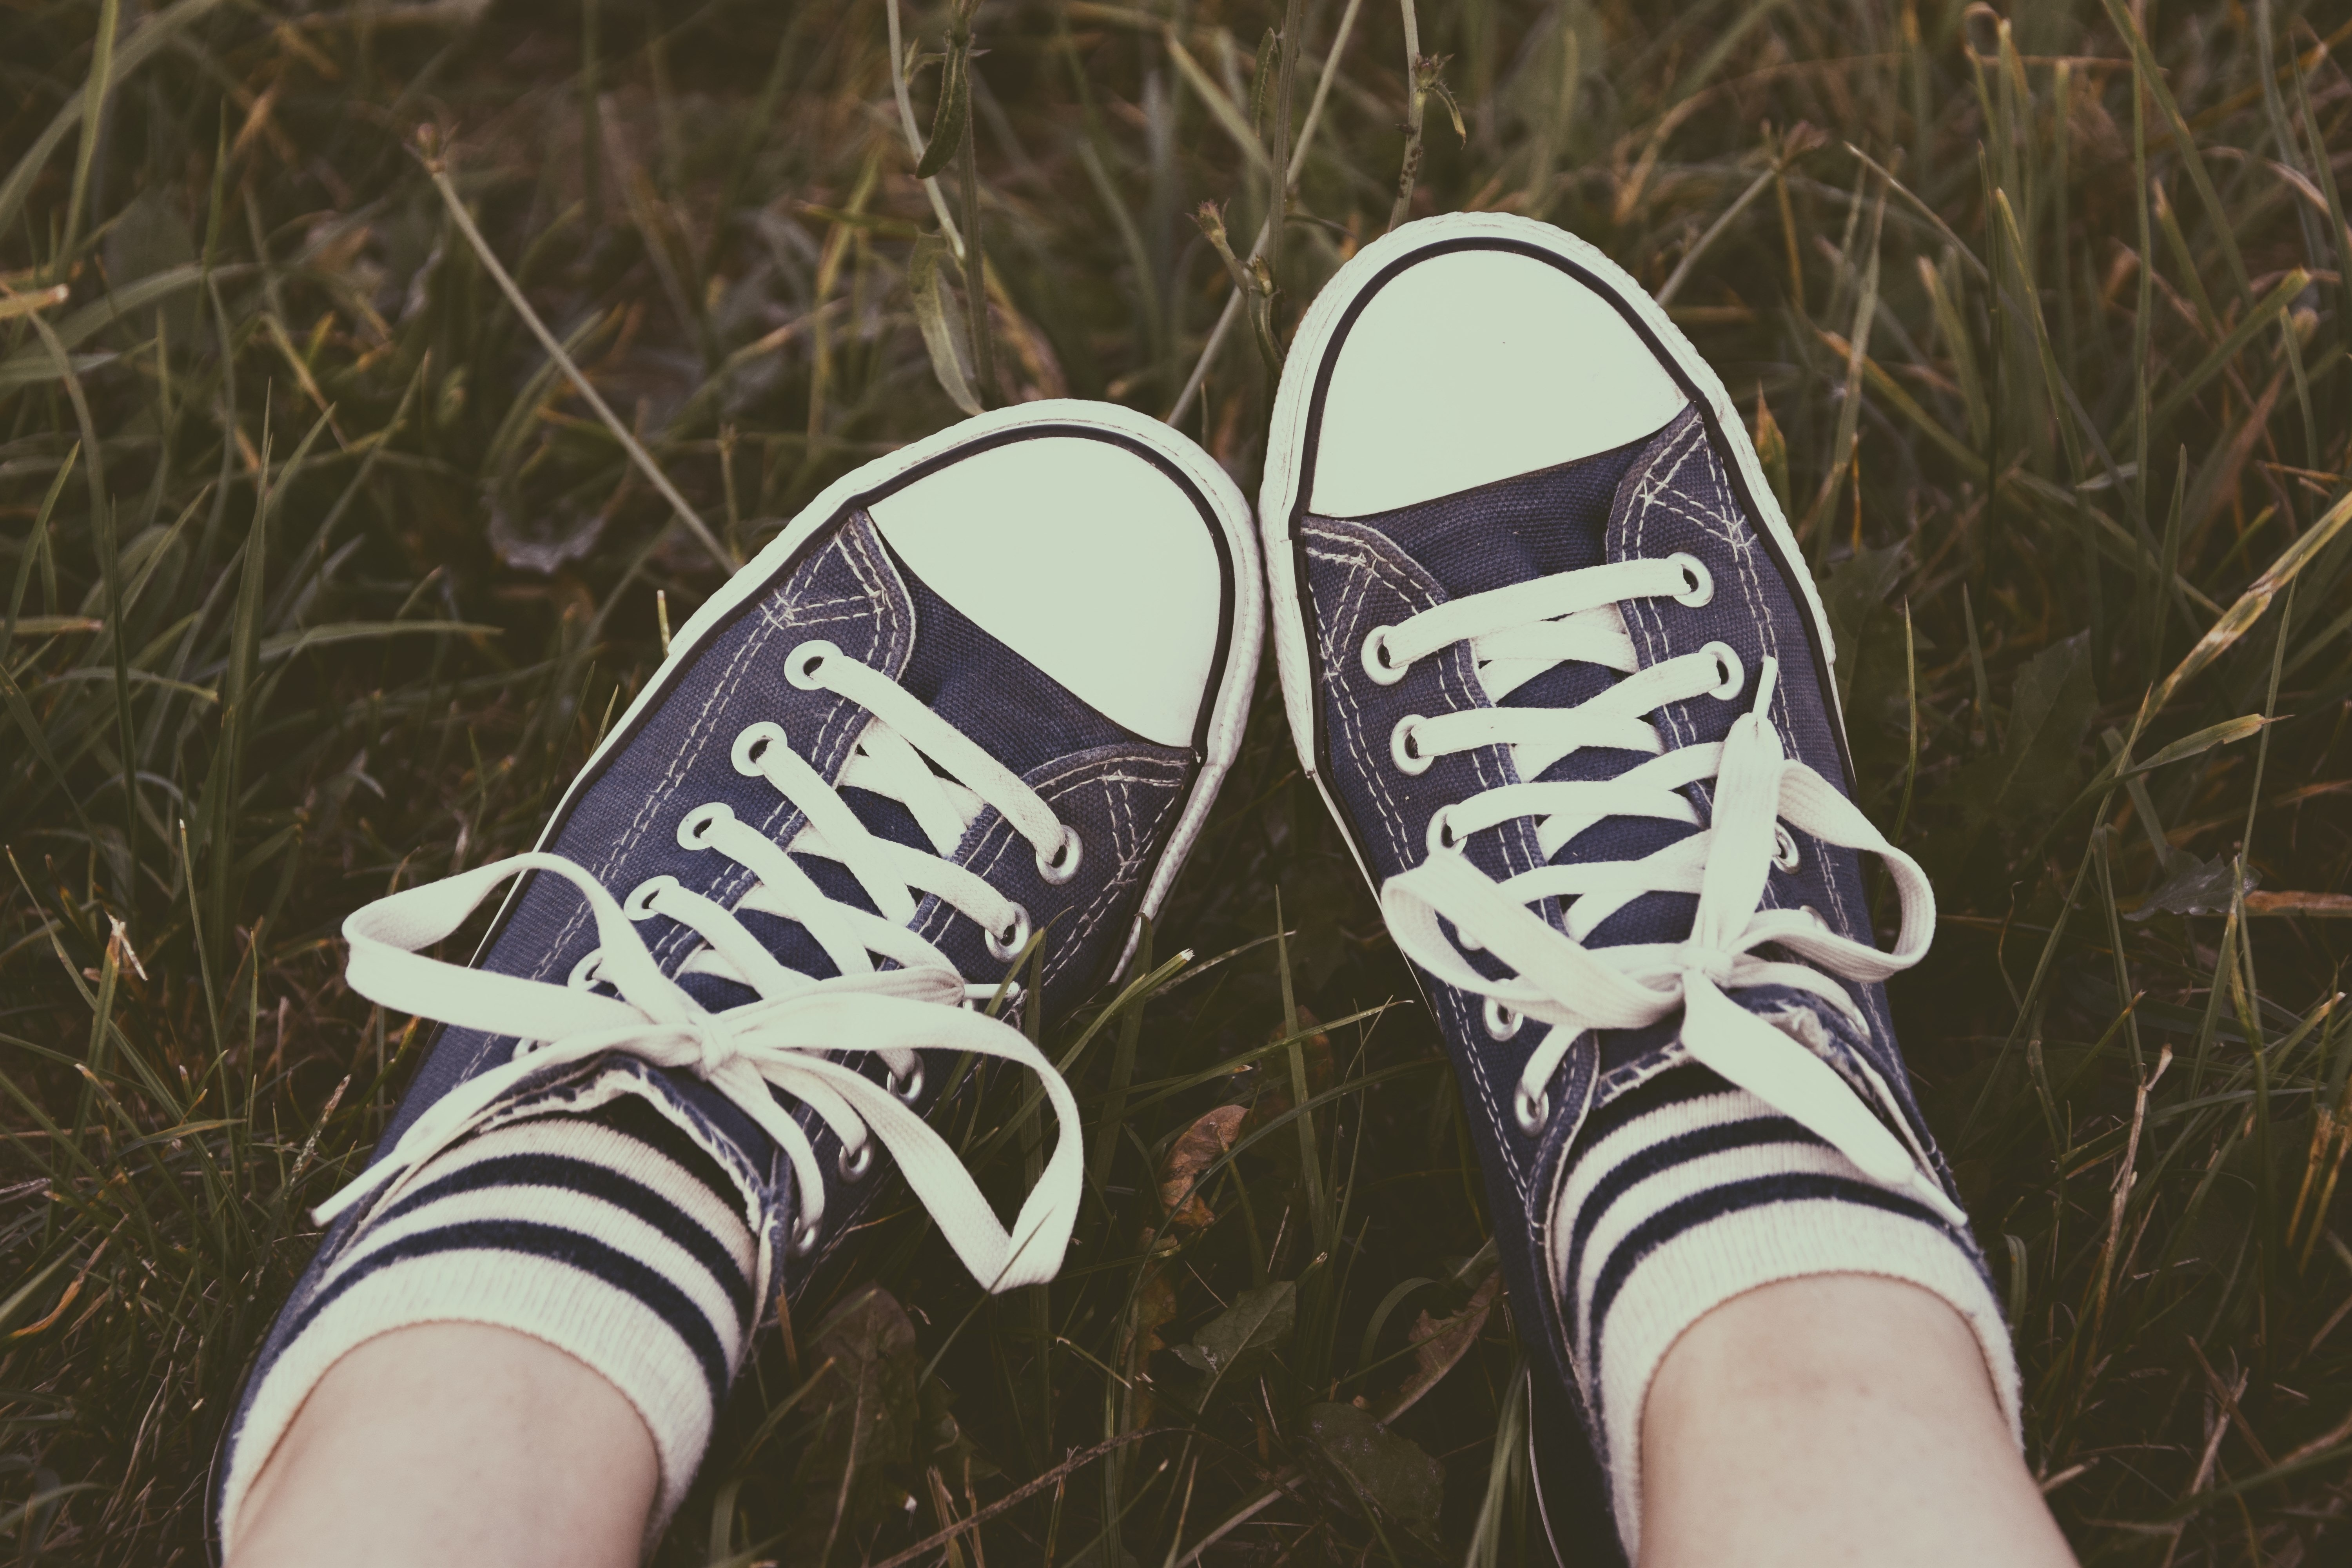 f8ff39e4b2d Person Feet Wearing Black Converse All-star Low-tops · Free Stock Photo